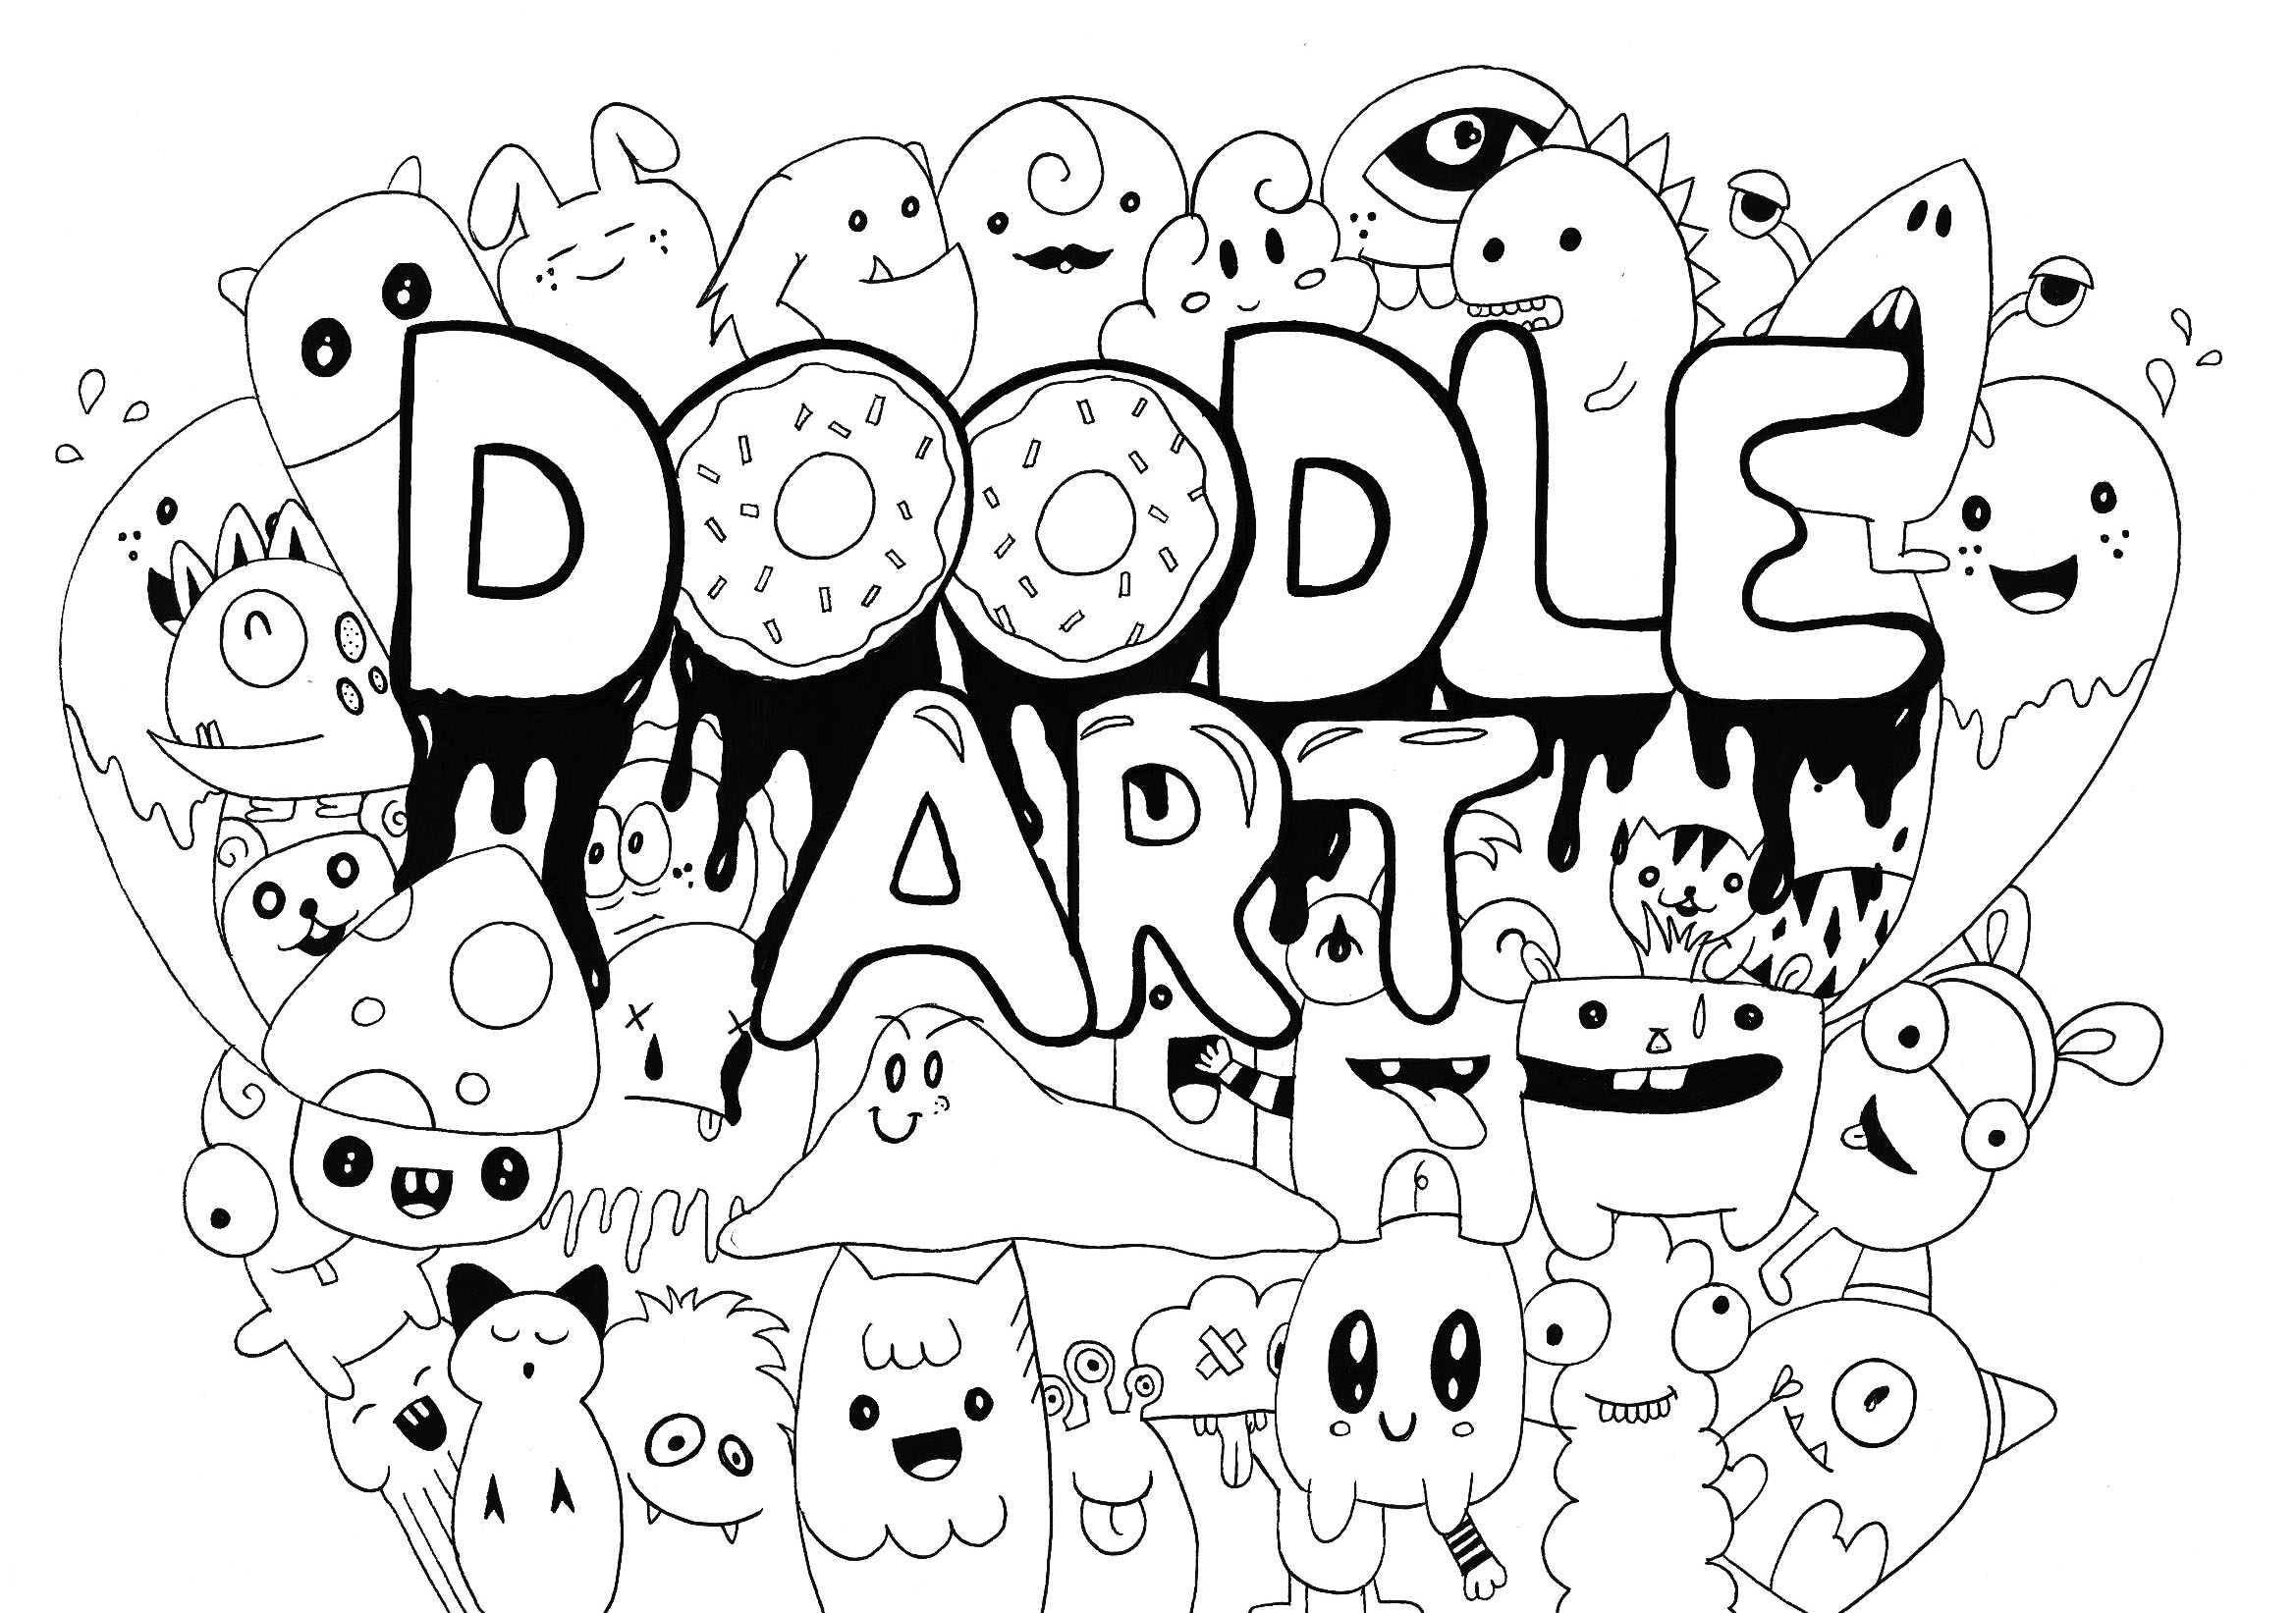 kids drawings for colouring doodle art to print for free doodle art kids coloring pages drawings for colouring kids